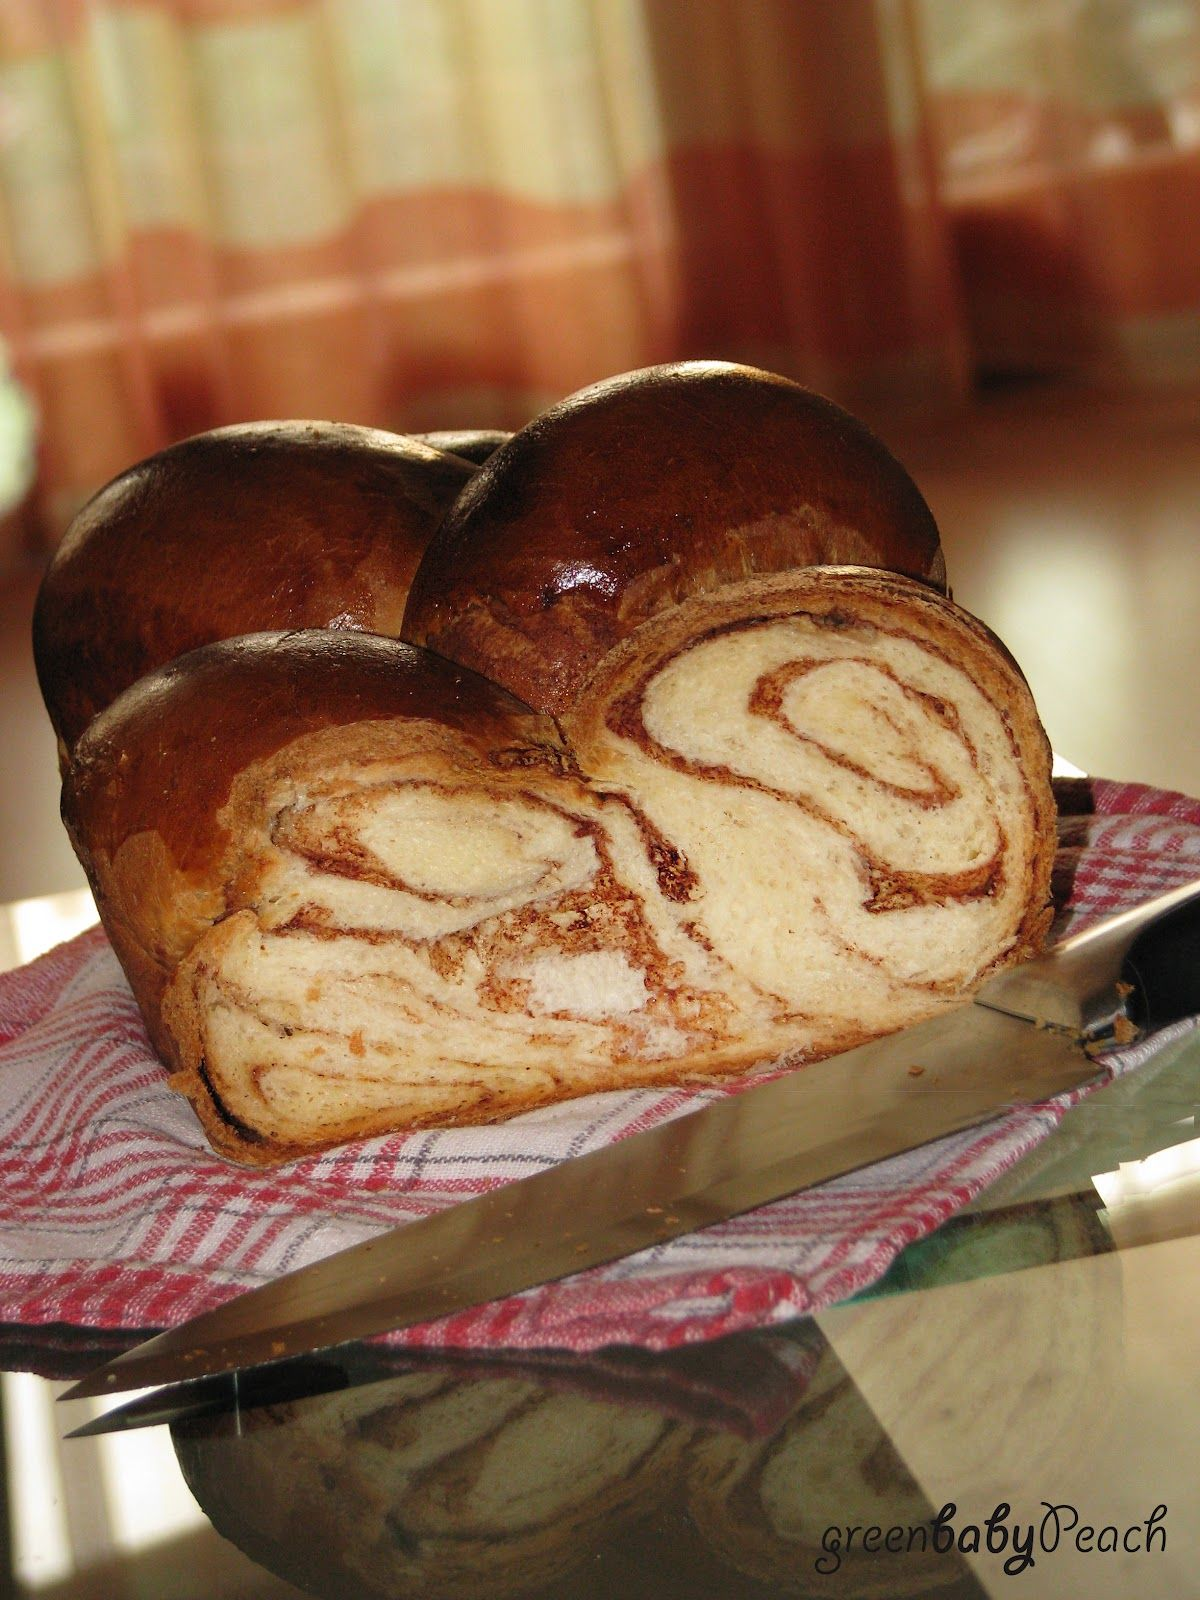 Kalács (pronounced [ˈkɒlaːtʃ]) is a Hungarian sweet bread very similar to brioche, usually baked in a braided form, and traditionally considered an Easter food.   It is also sometimes filled with things such as jam, nuts or chocolate.